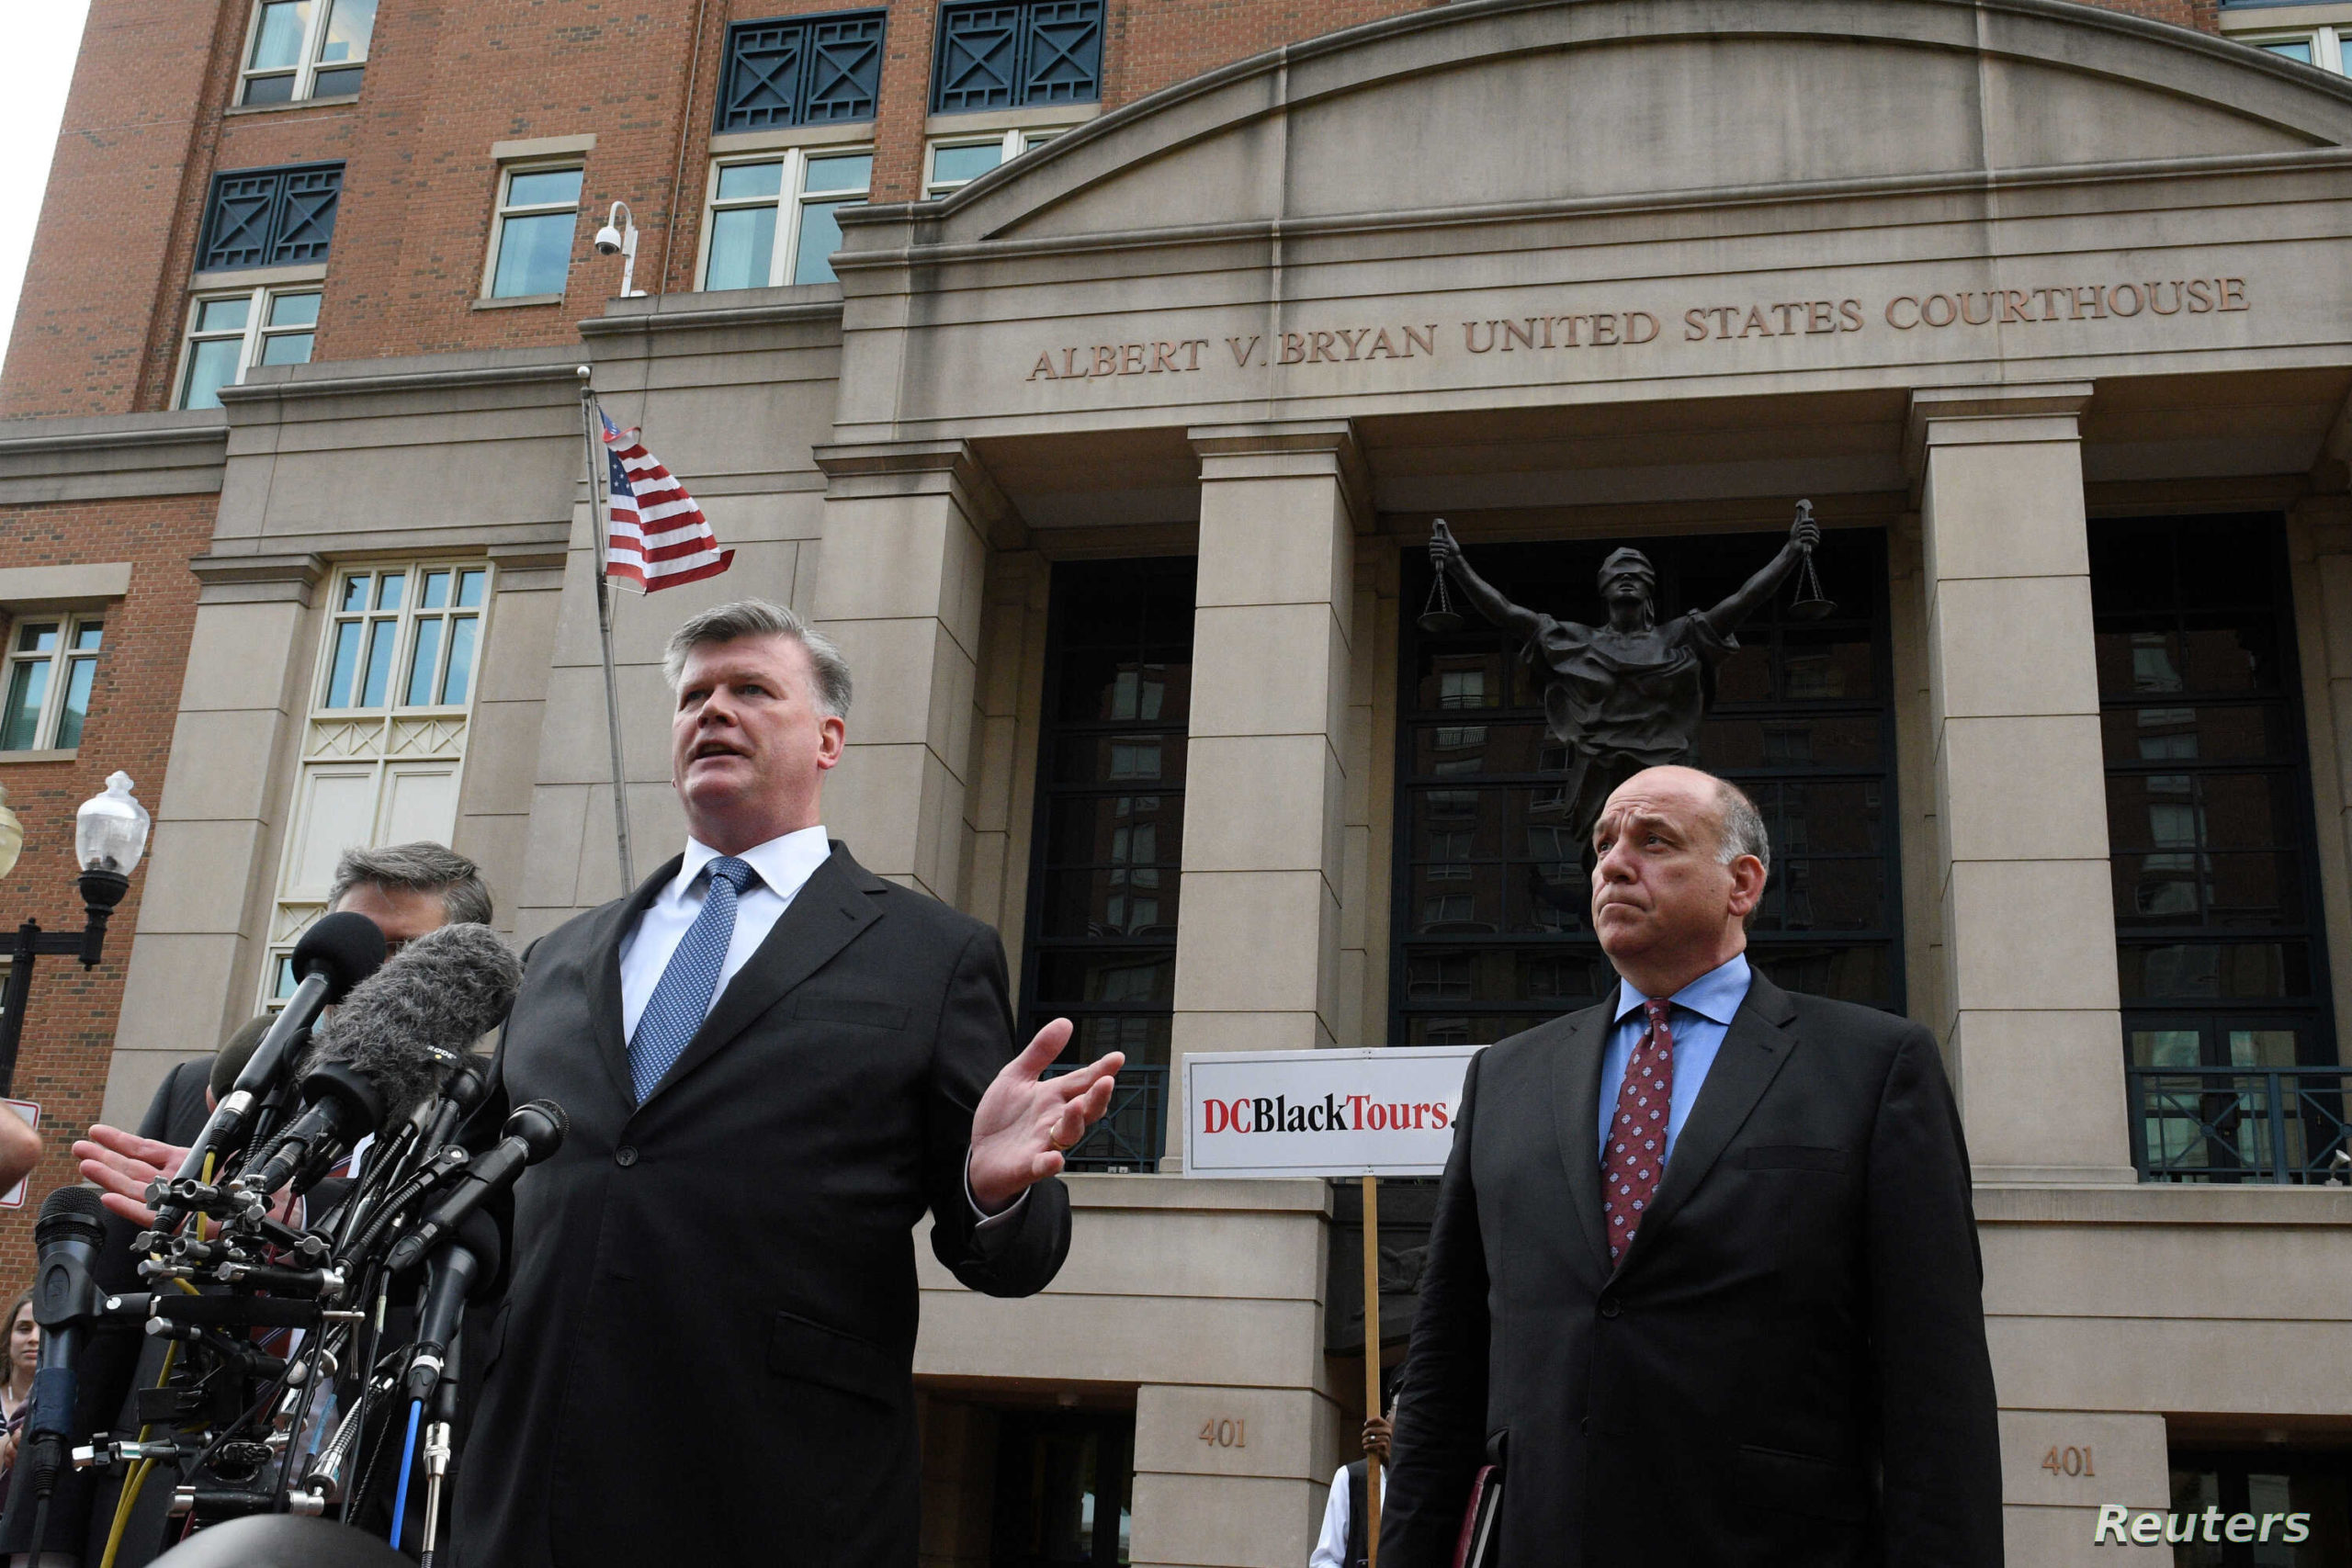 Attorneys And Managers Of Fraudulent Asylum Scheme Charged In Manhattan Federal Court